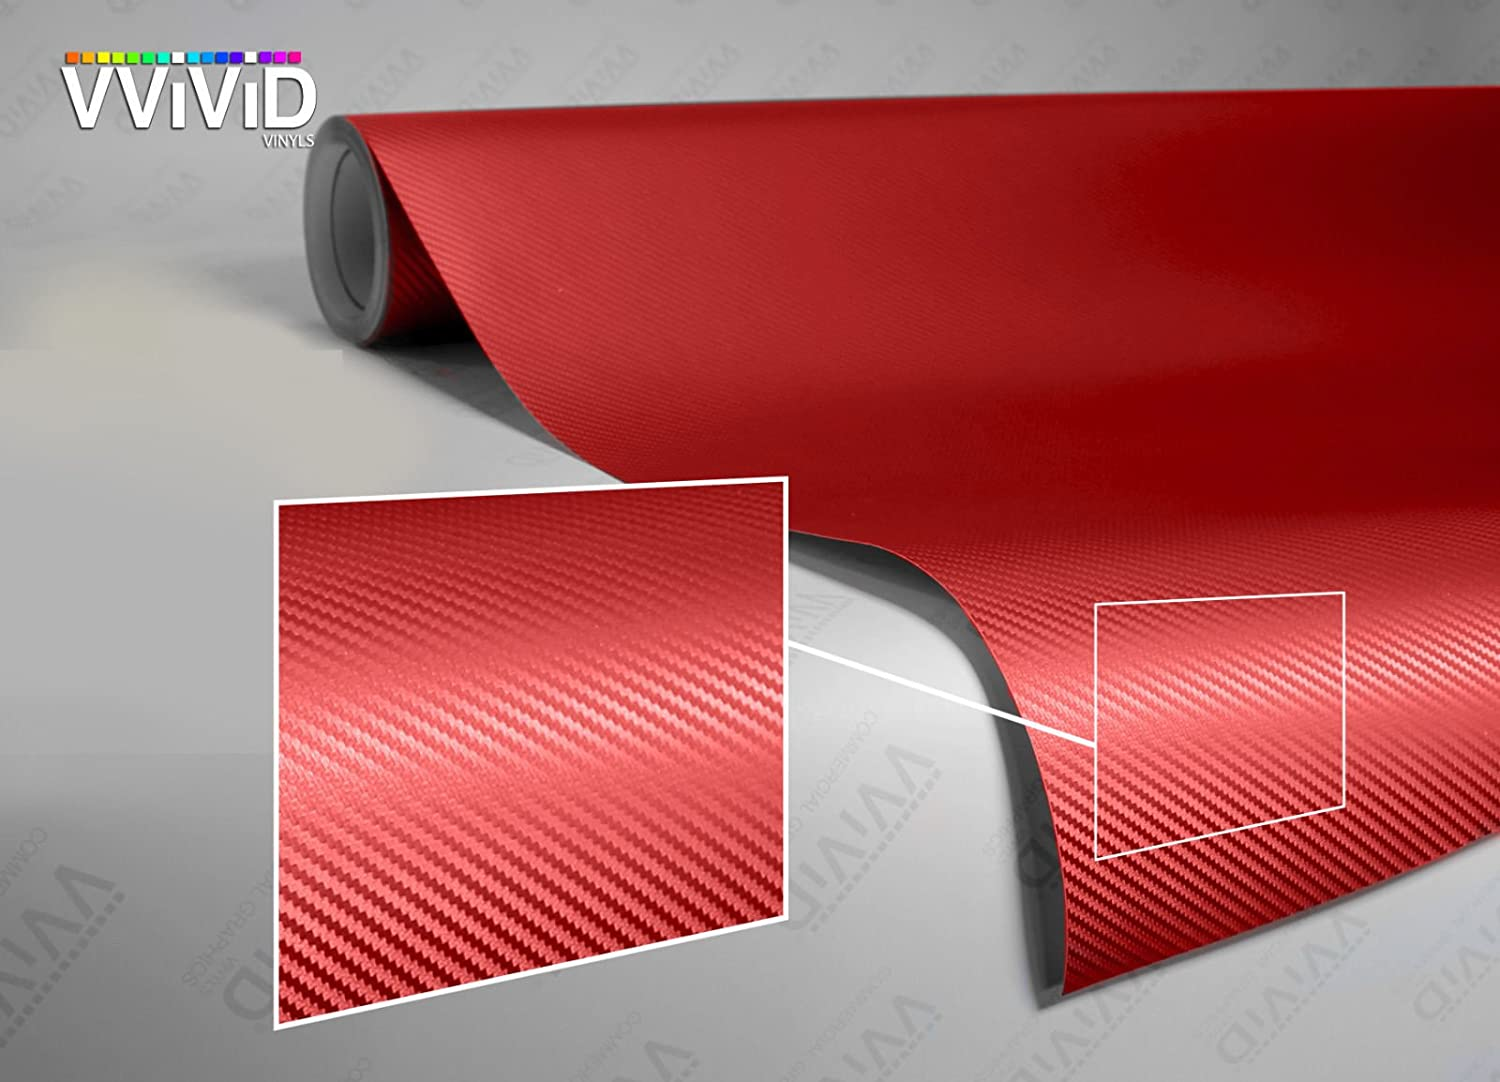 VViViD XPO Red Carbon Fiber 5ft x 6ft Car Wrap Vinyl Roll with Air Release Technology